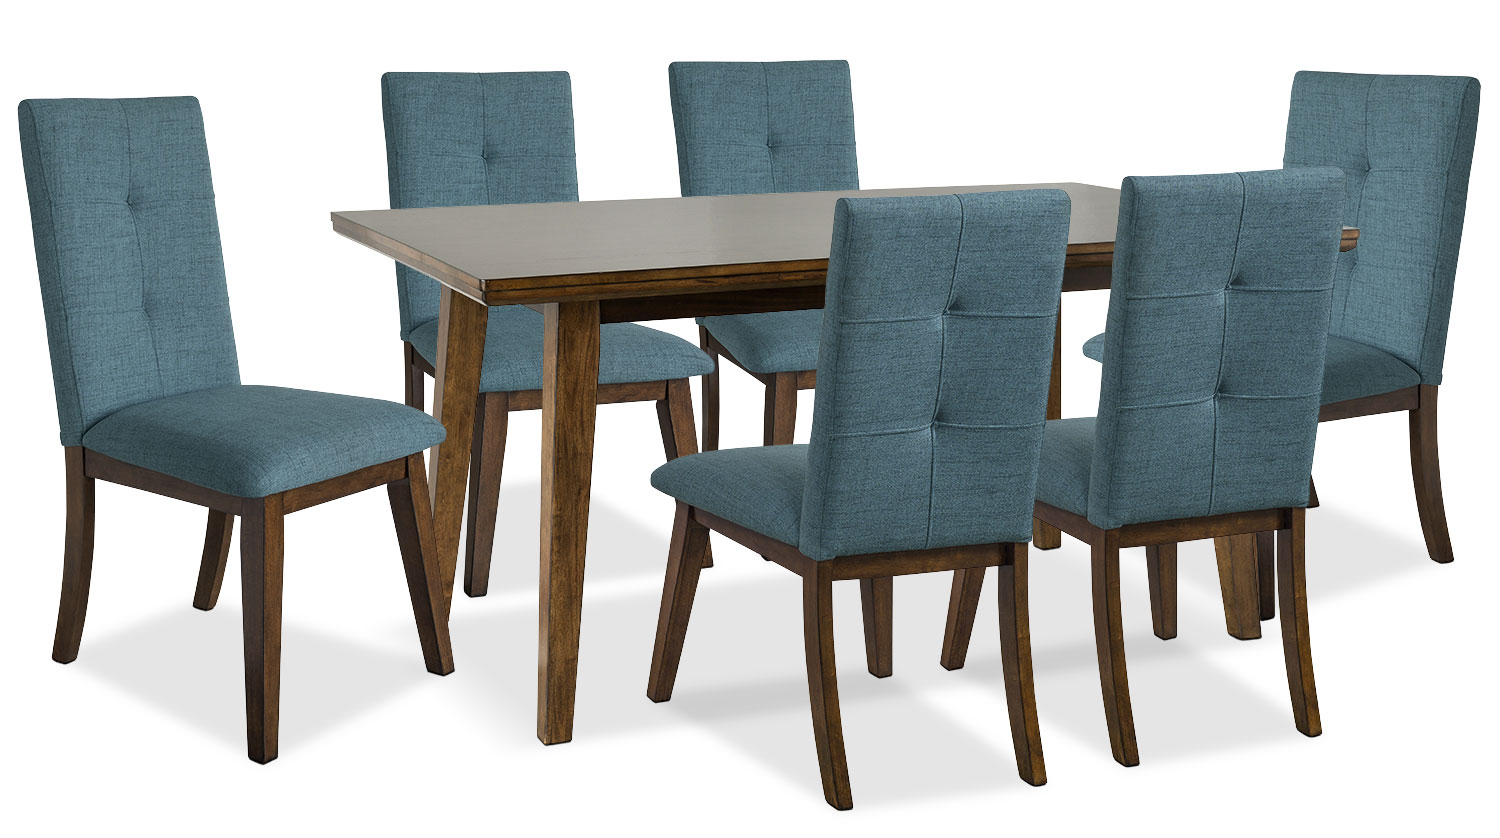 Chelsea 7 Piece Dining Package With Aqua Chairs The Brick